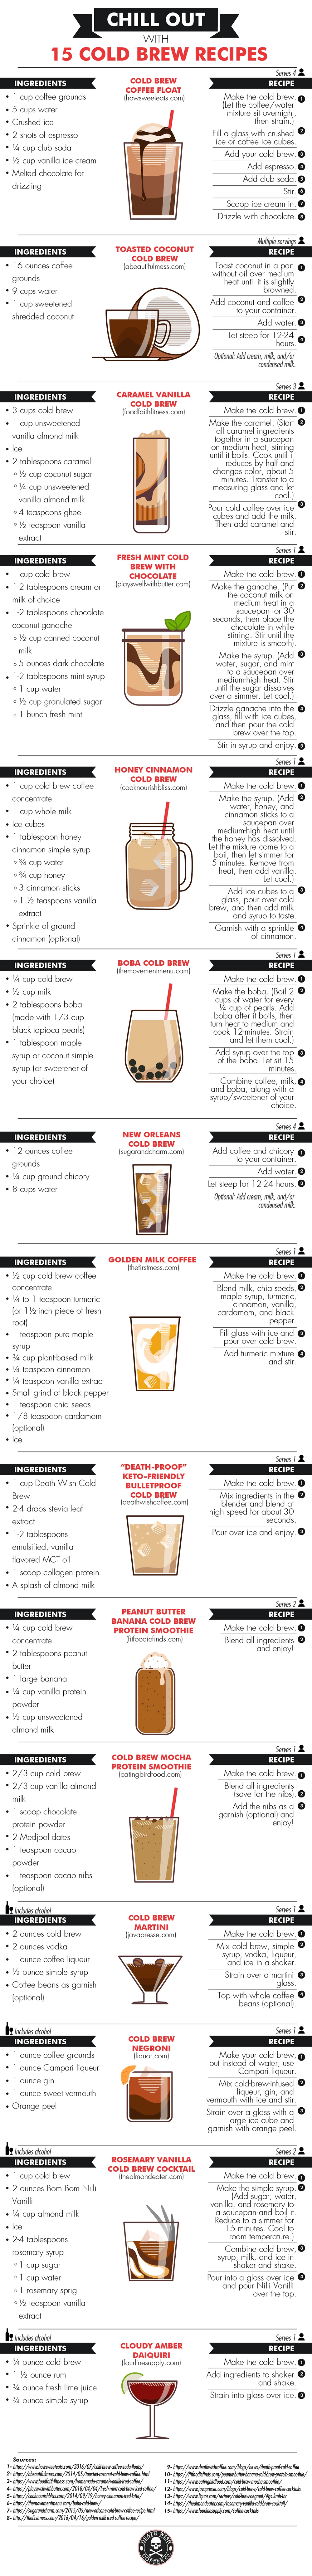 15 Killer Cold Brews to Try This Summer - Infographic